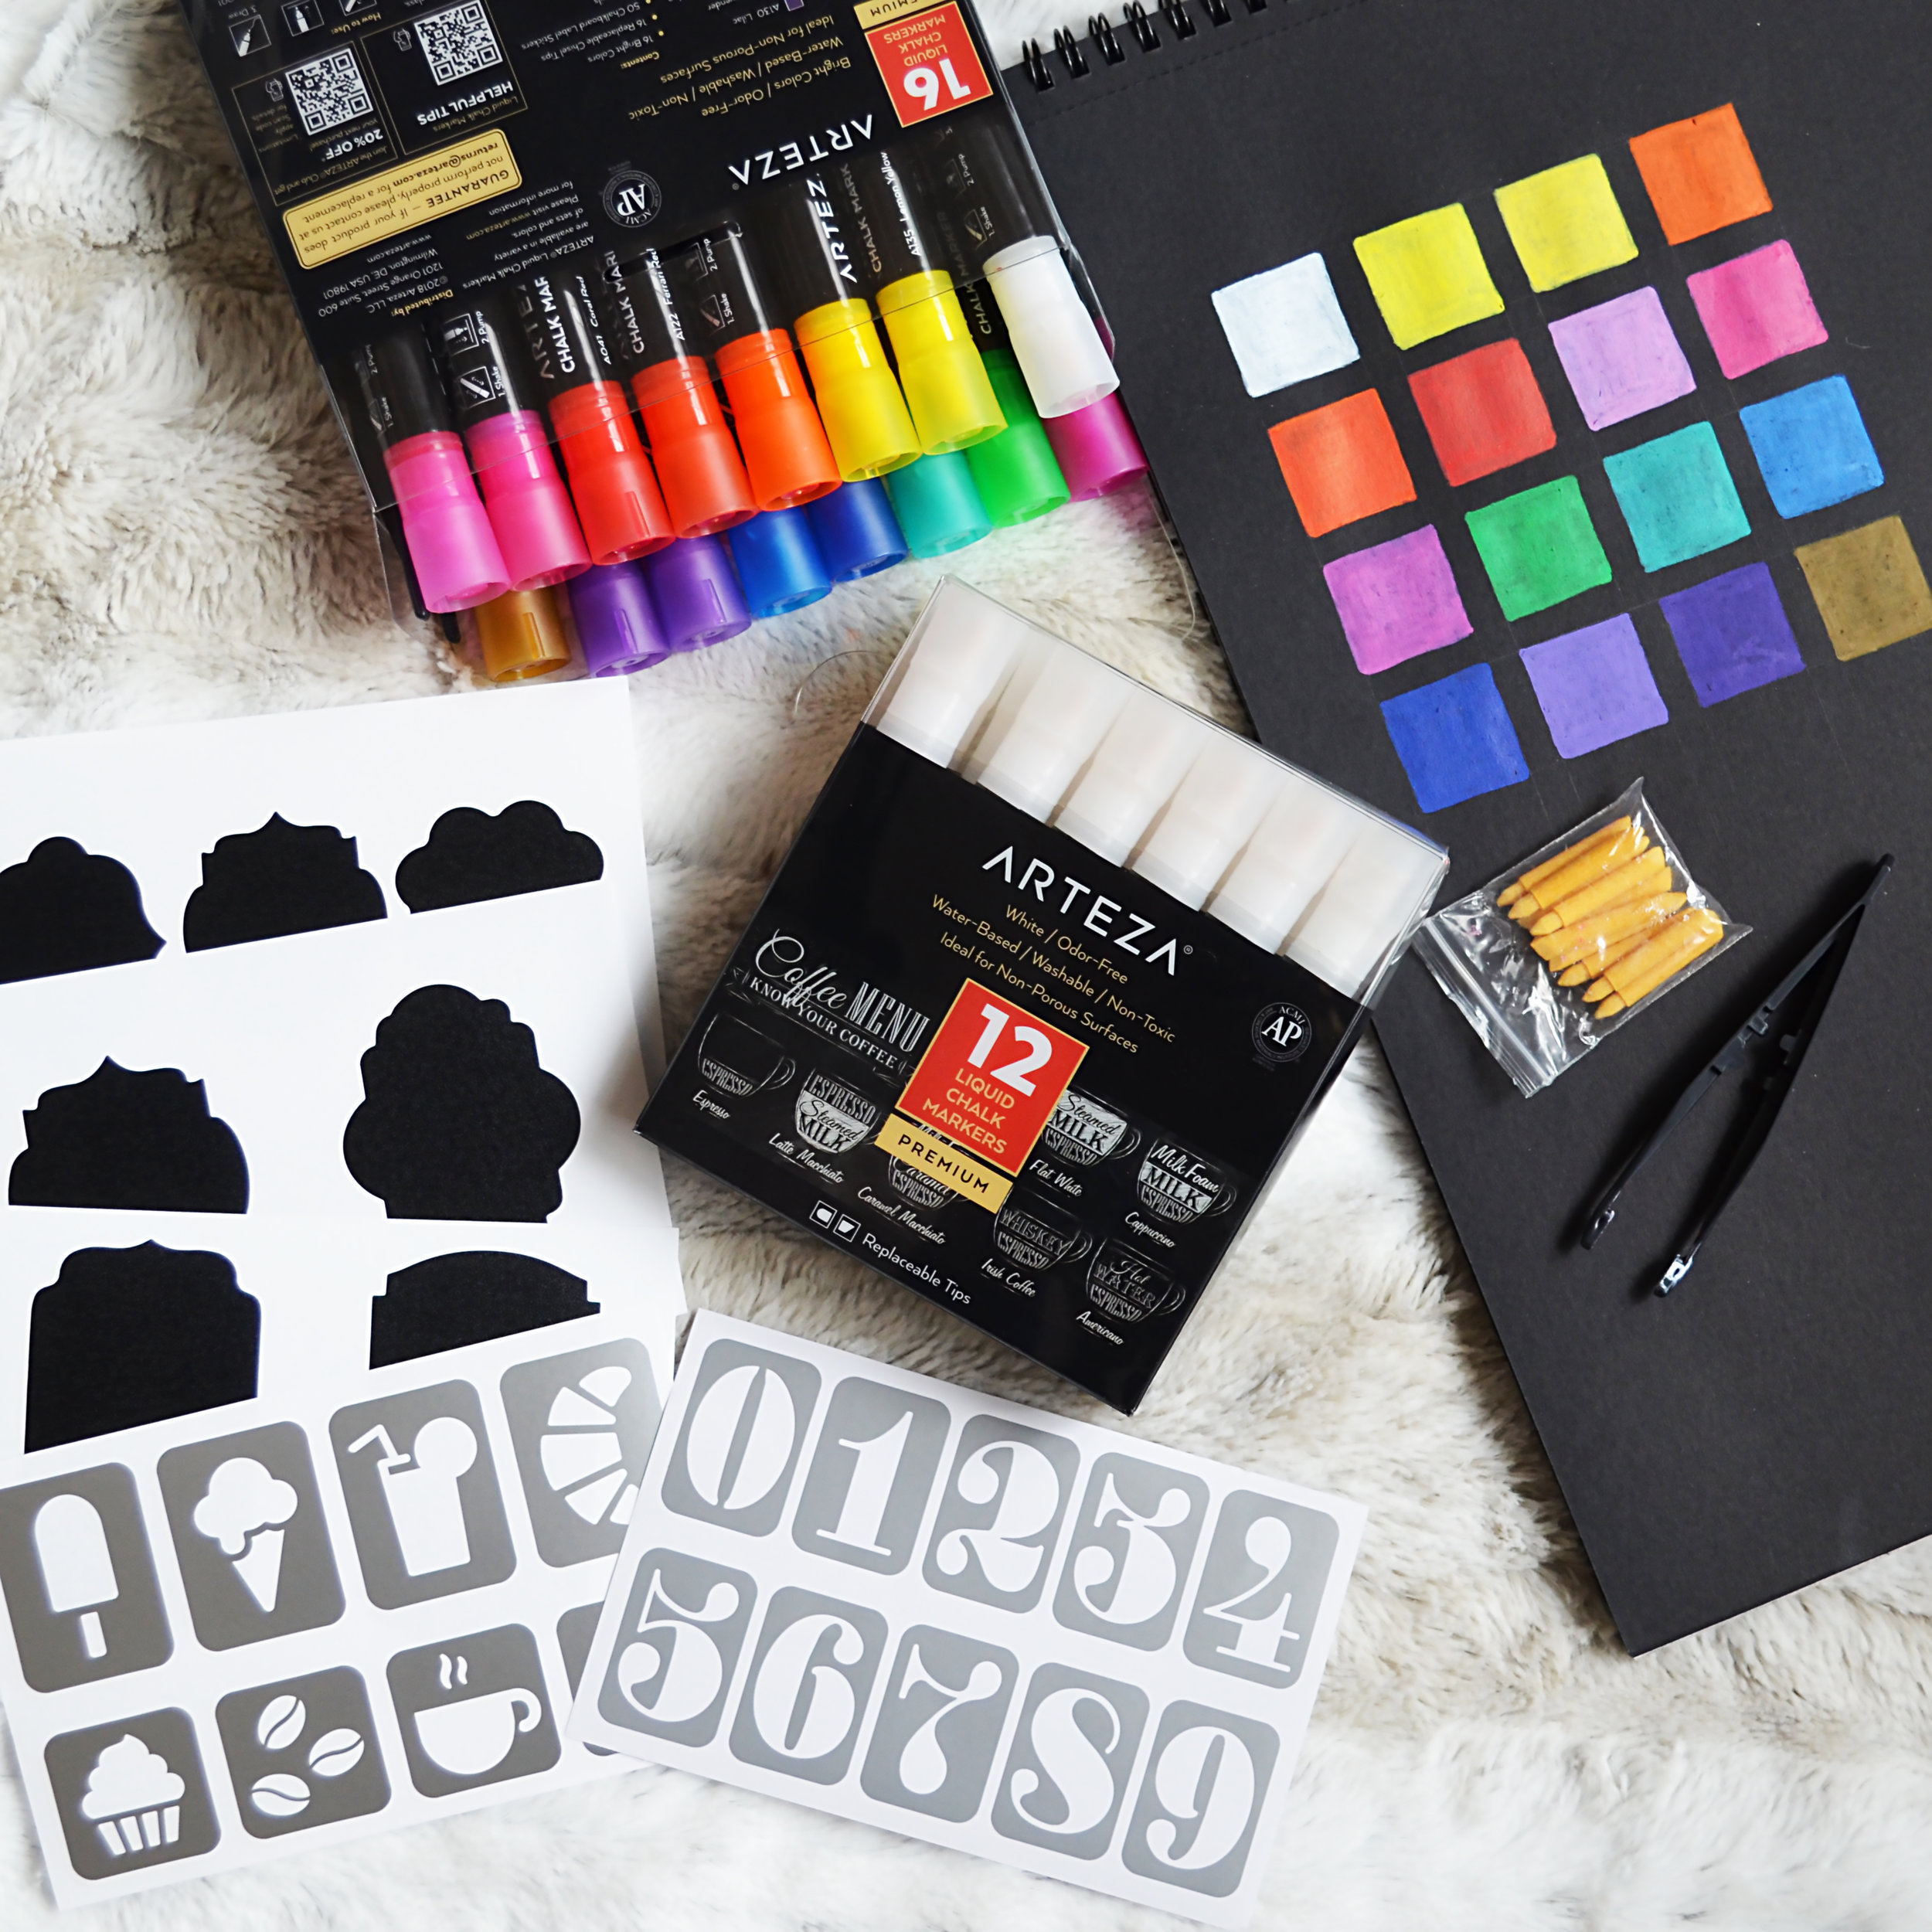 If you've seen my recent posts on Instagram, you'll know that I've also raved about these new Arteza chalk markers. I have both the brights and white sets and I really do love them. The colors are more unique than what you'd usually find with chalk markers and they're so varied. I also love that the colored set comes with chalk labels and stencils. The big difference between these markers and the others is that the tips are not dual sided, so they come with a little bag of chisel tips and tweezers. It's only a little bit of an inconvenience but at the same time if you happen to ruin a marker tip somehow, you'll always have an extra clean one.